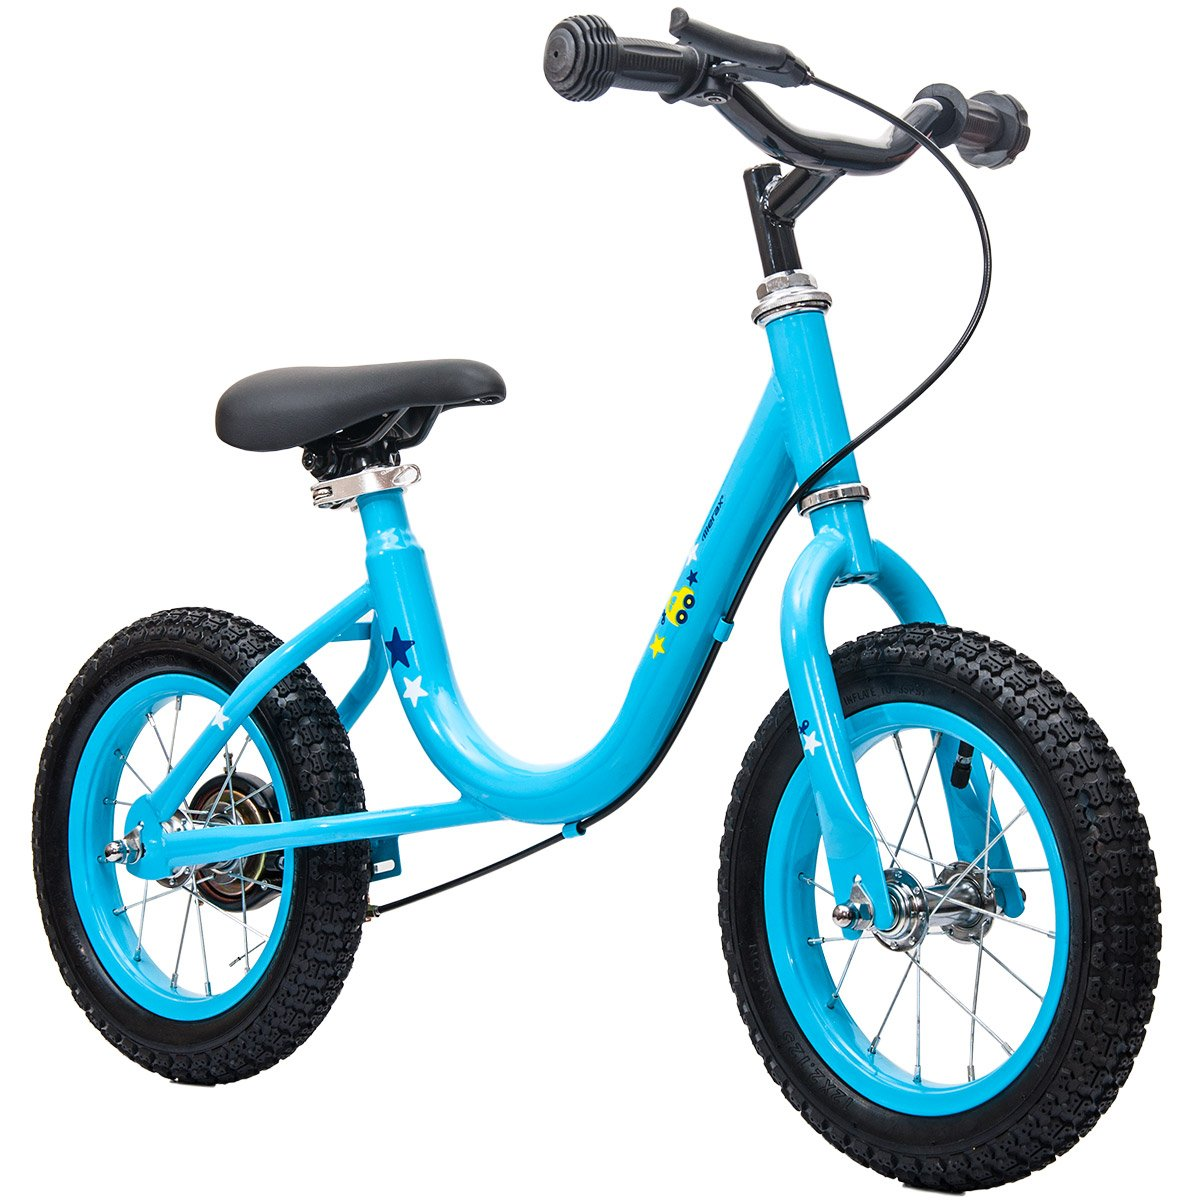 Merax Fun Series Kids' Balance Bike (Blue)